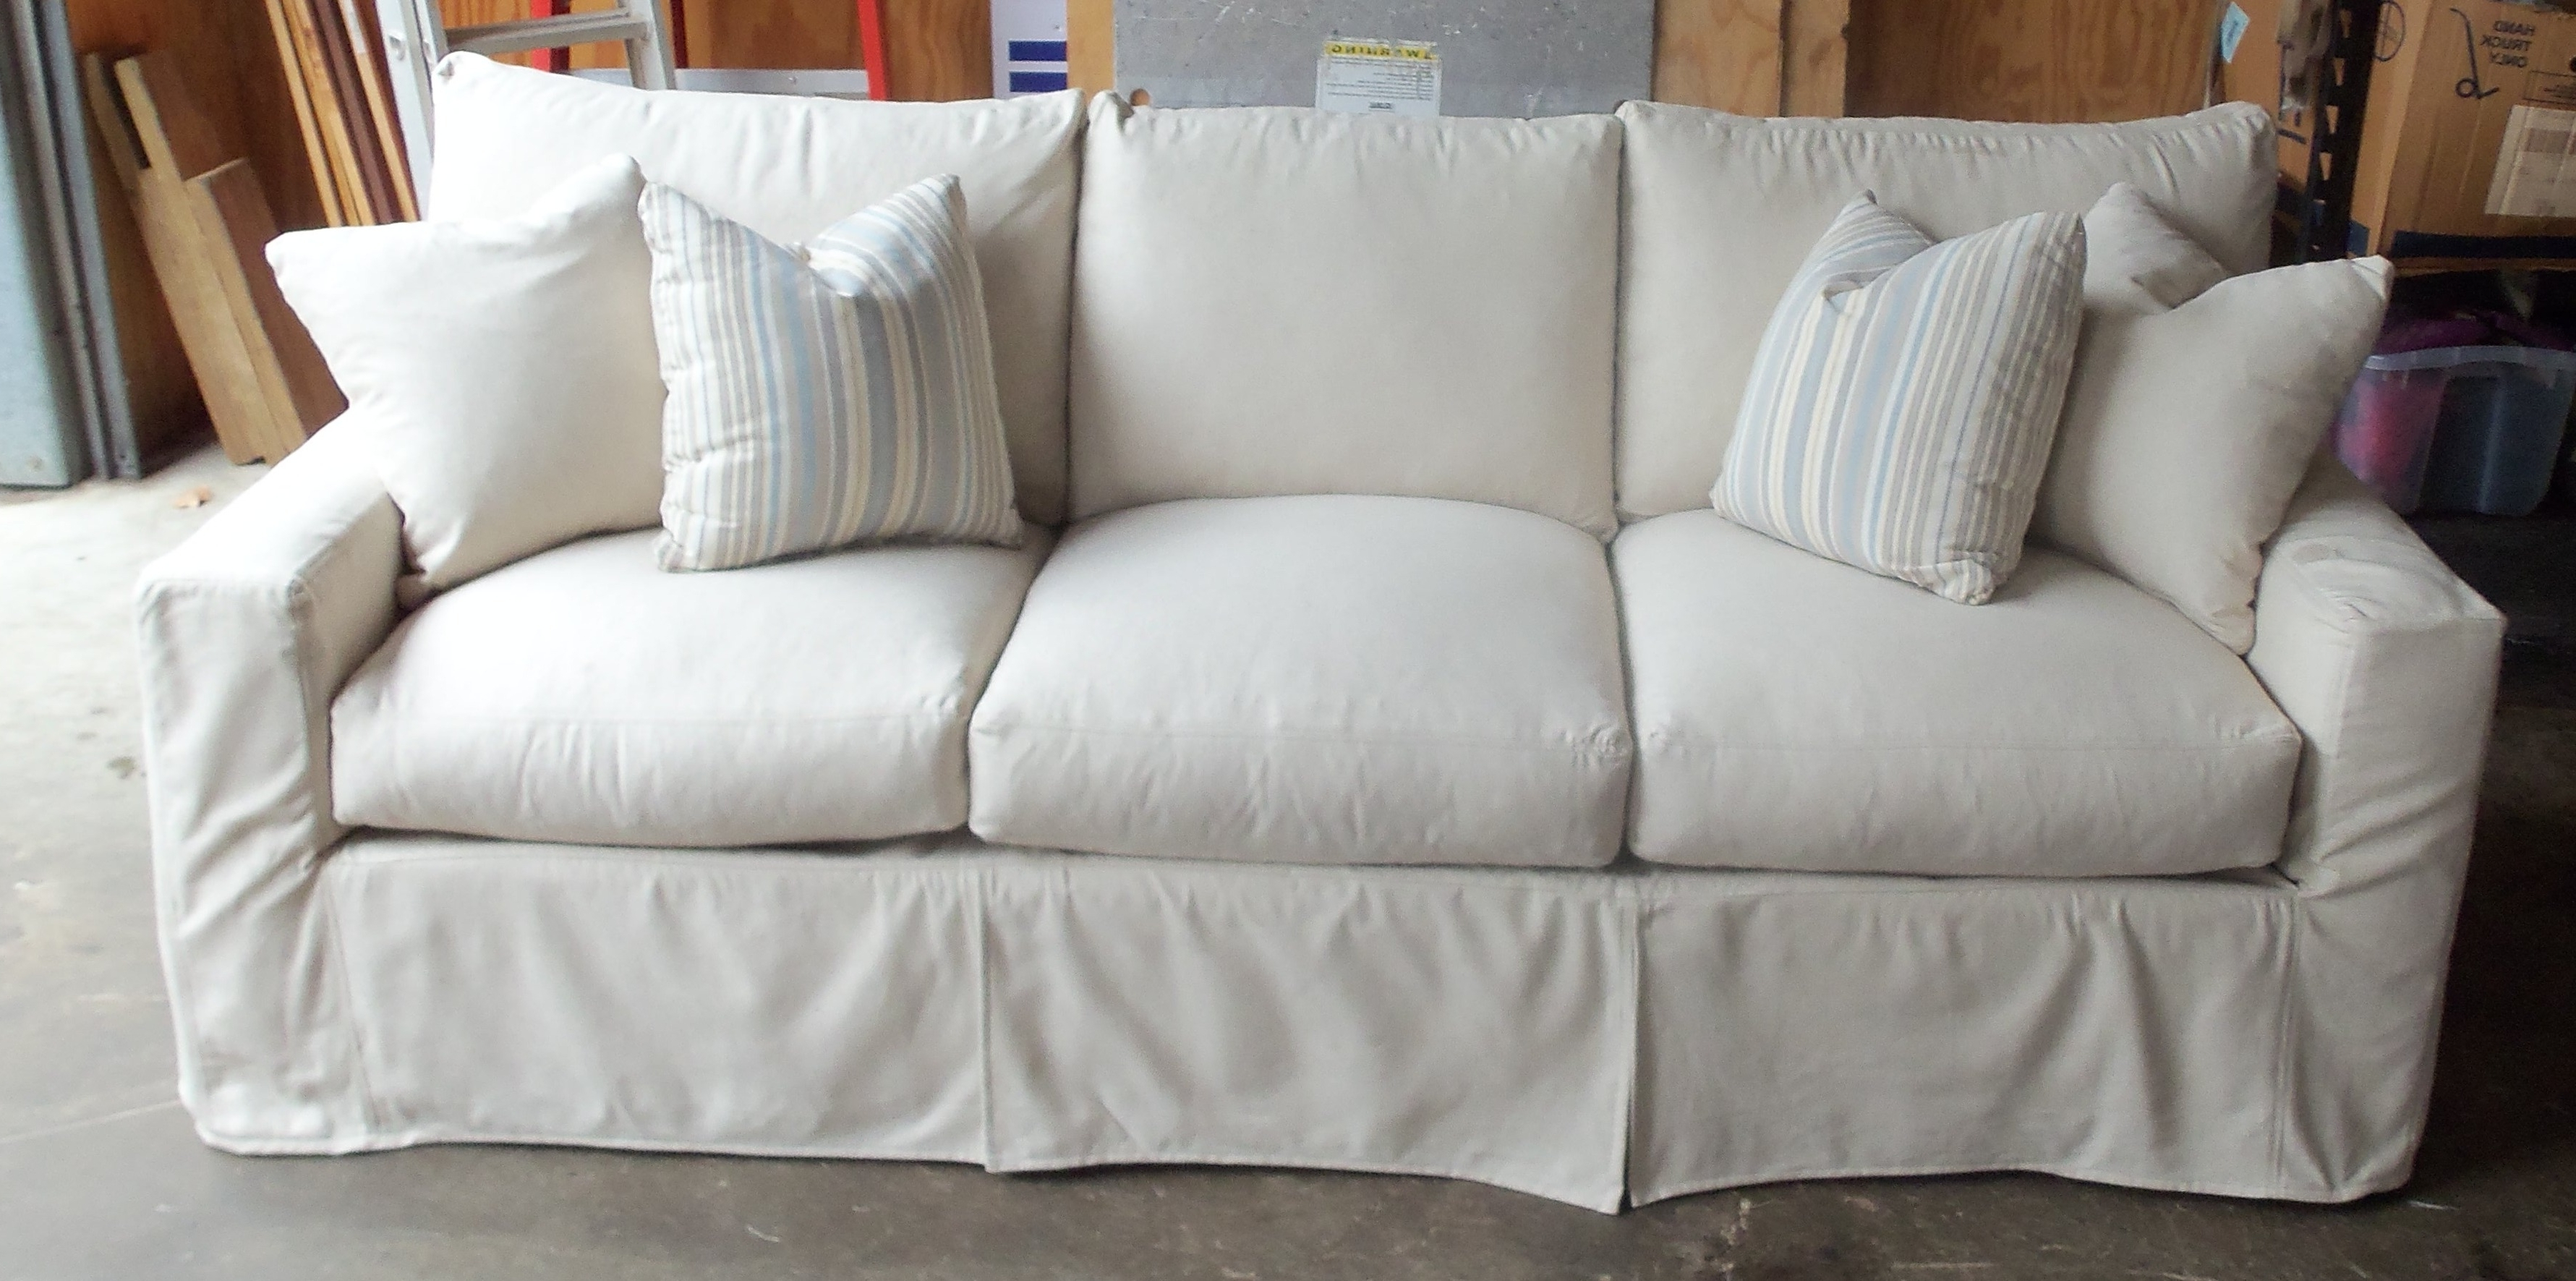 Most Recent Amazing Slipcovers For Sofa 92 For Your Sofa Table Ideas With In Slipcovers Sofas (View 7 of 20)